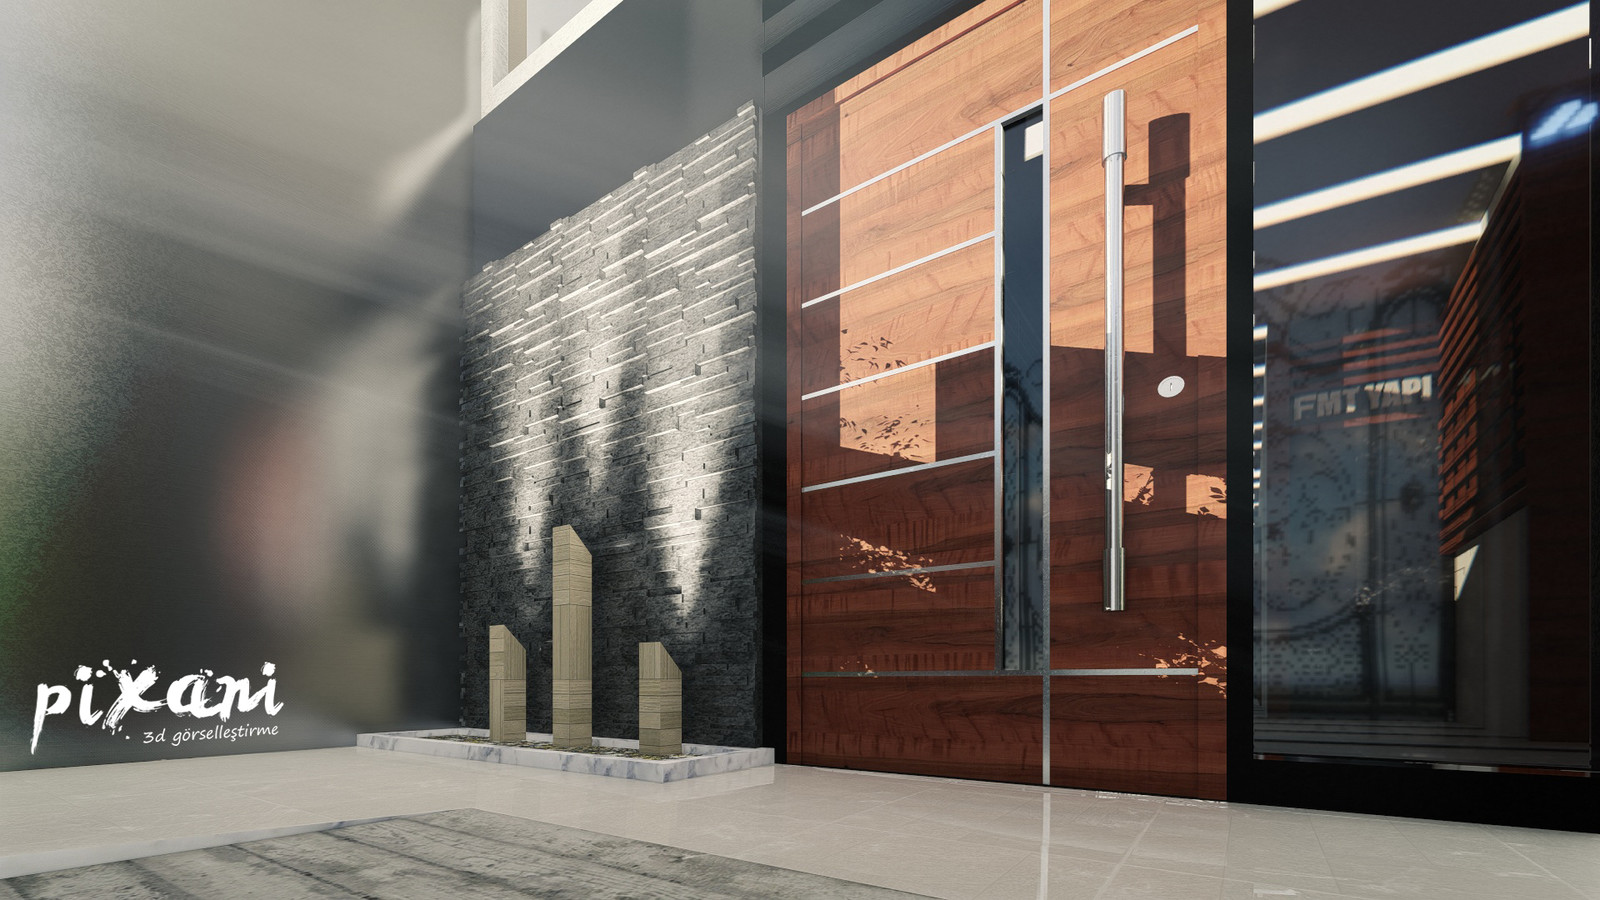 An entrance and landscape and 1st floor interior design for FMT Yapi.  And also kitchens and bathrooms are designed too.  Architect & CG Artist : Serdar Çakmak rendered and designed in Pixani Studios www.pix-ani.com